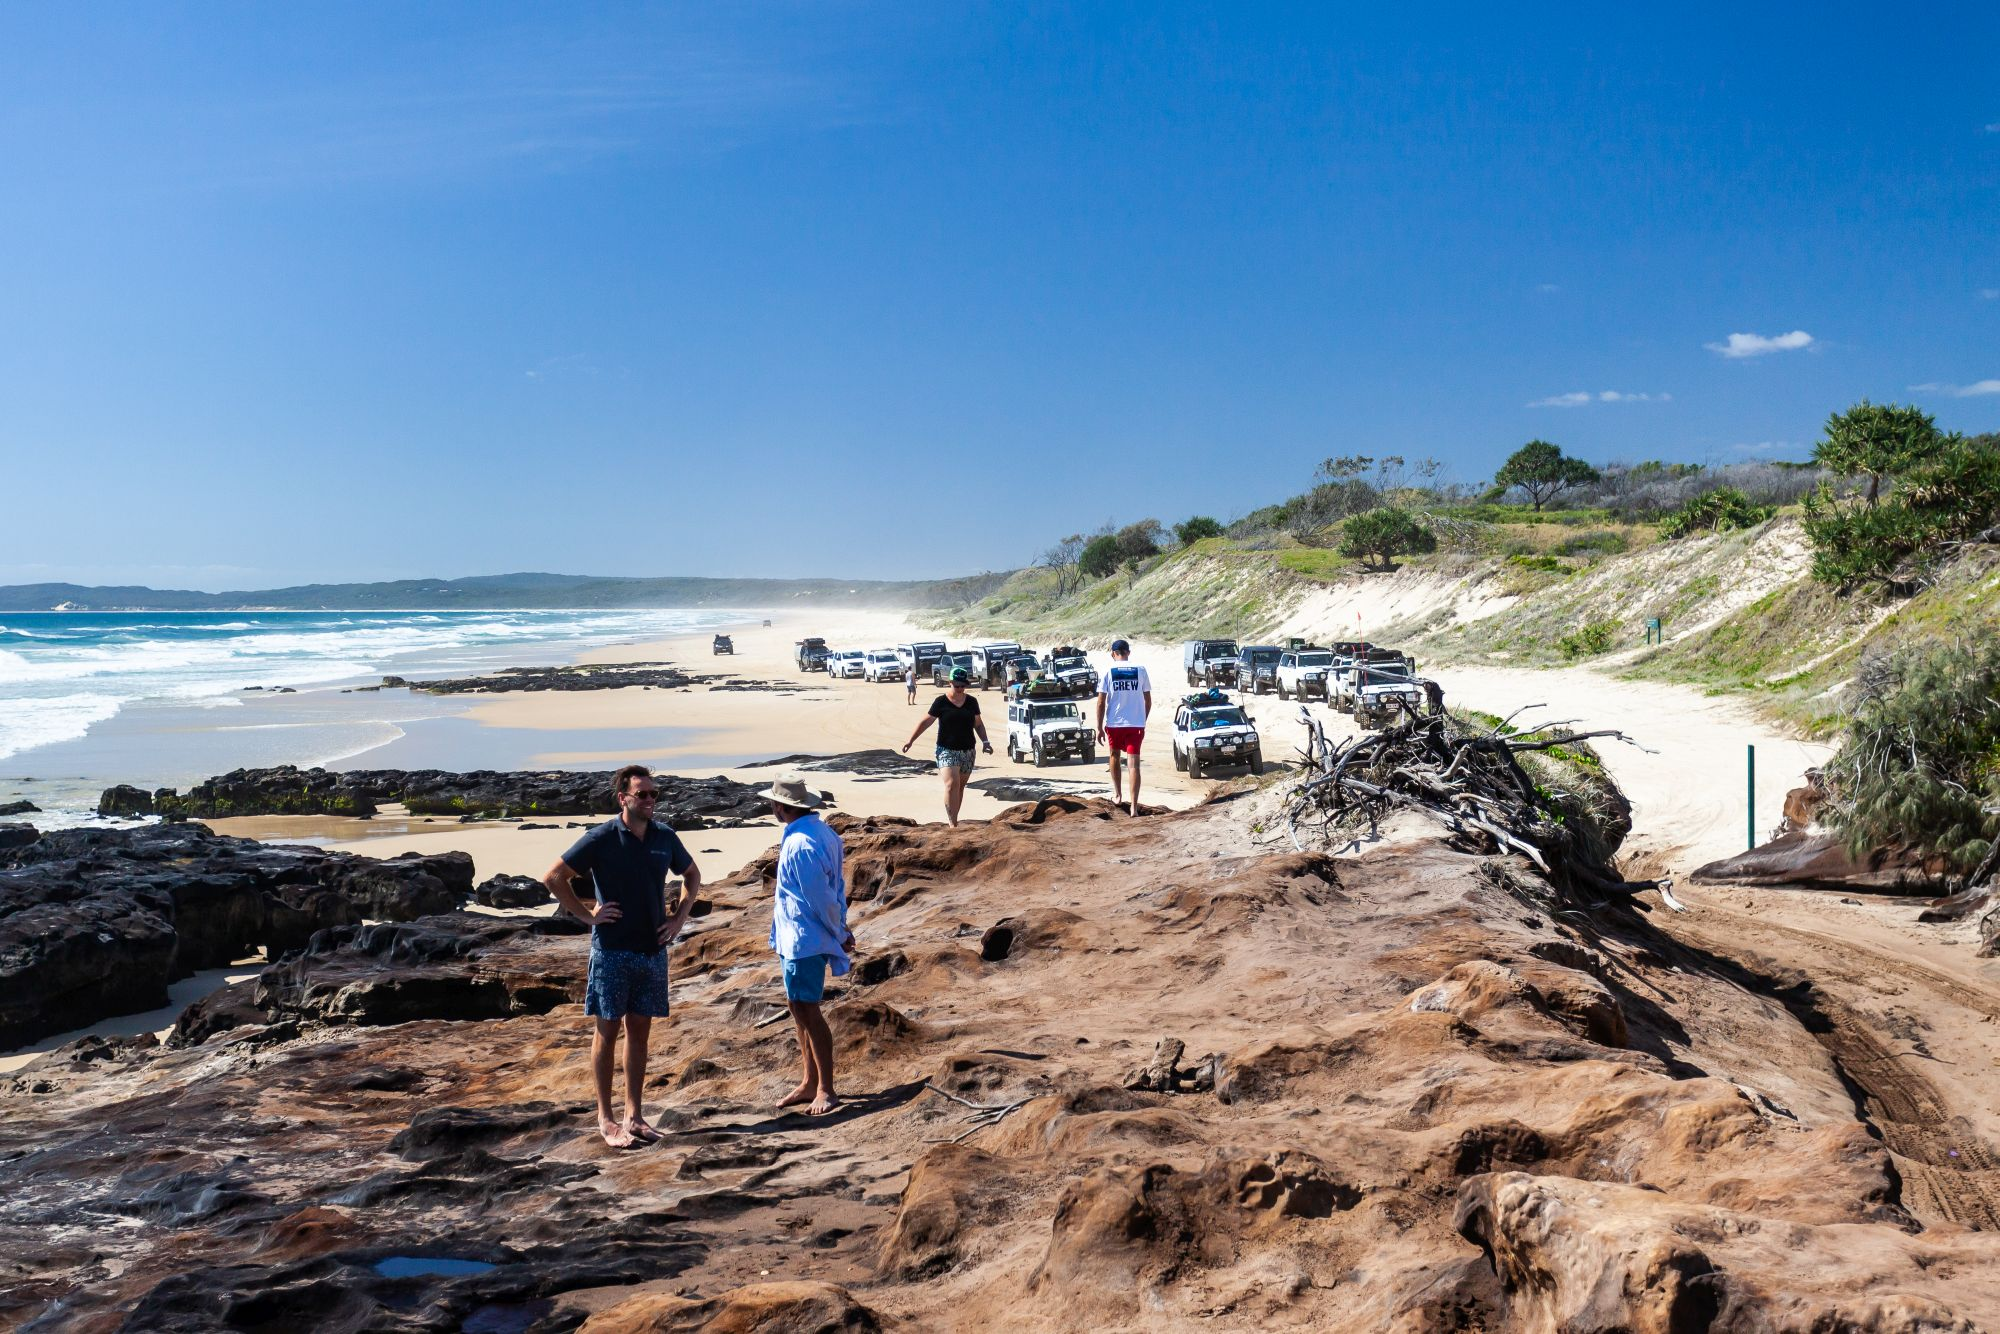 Ngkala Rocks impassable, Diray and Carree closed on Fraser Island